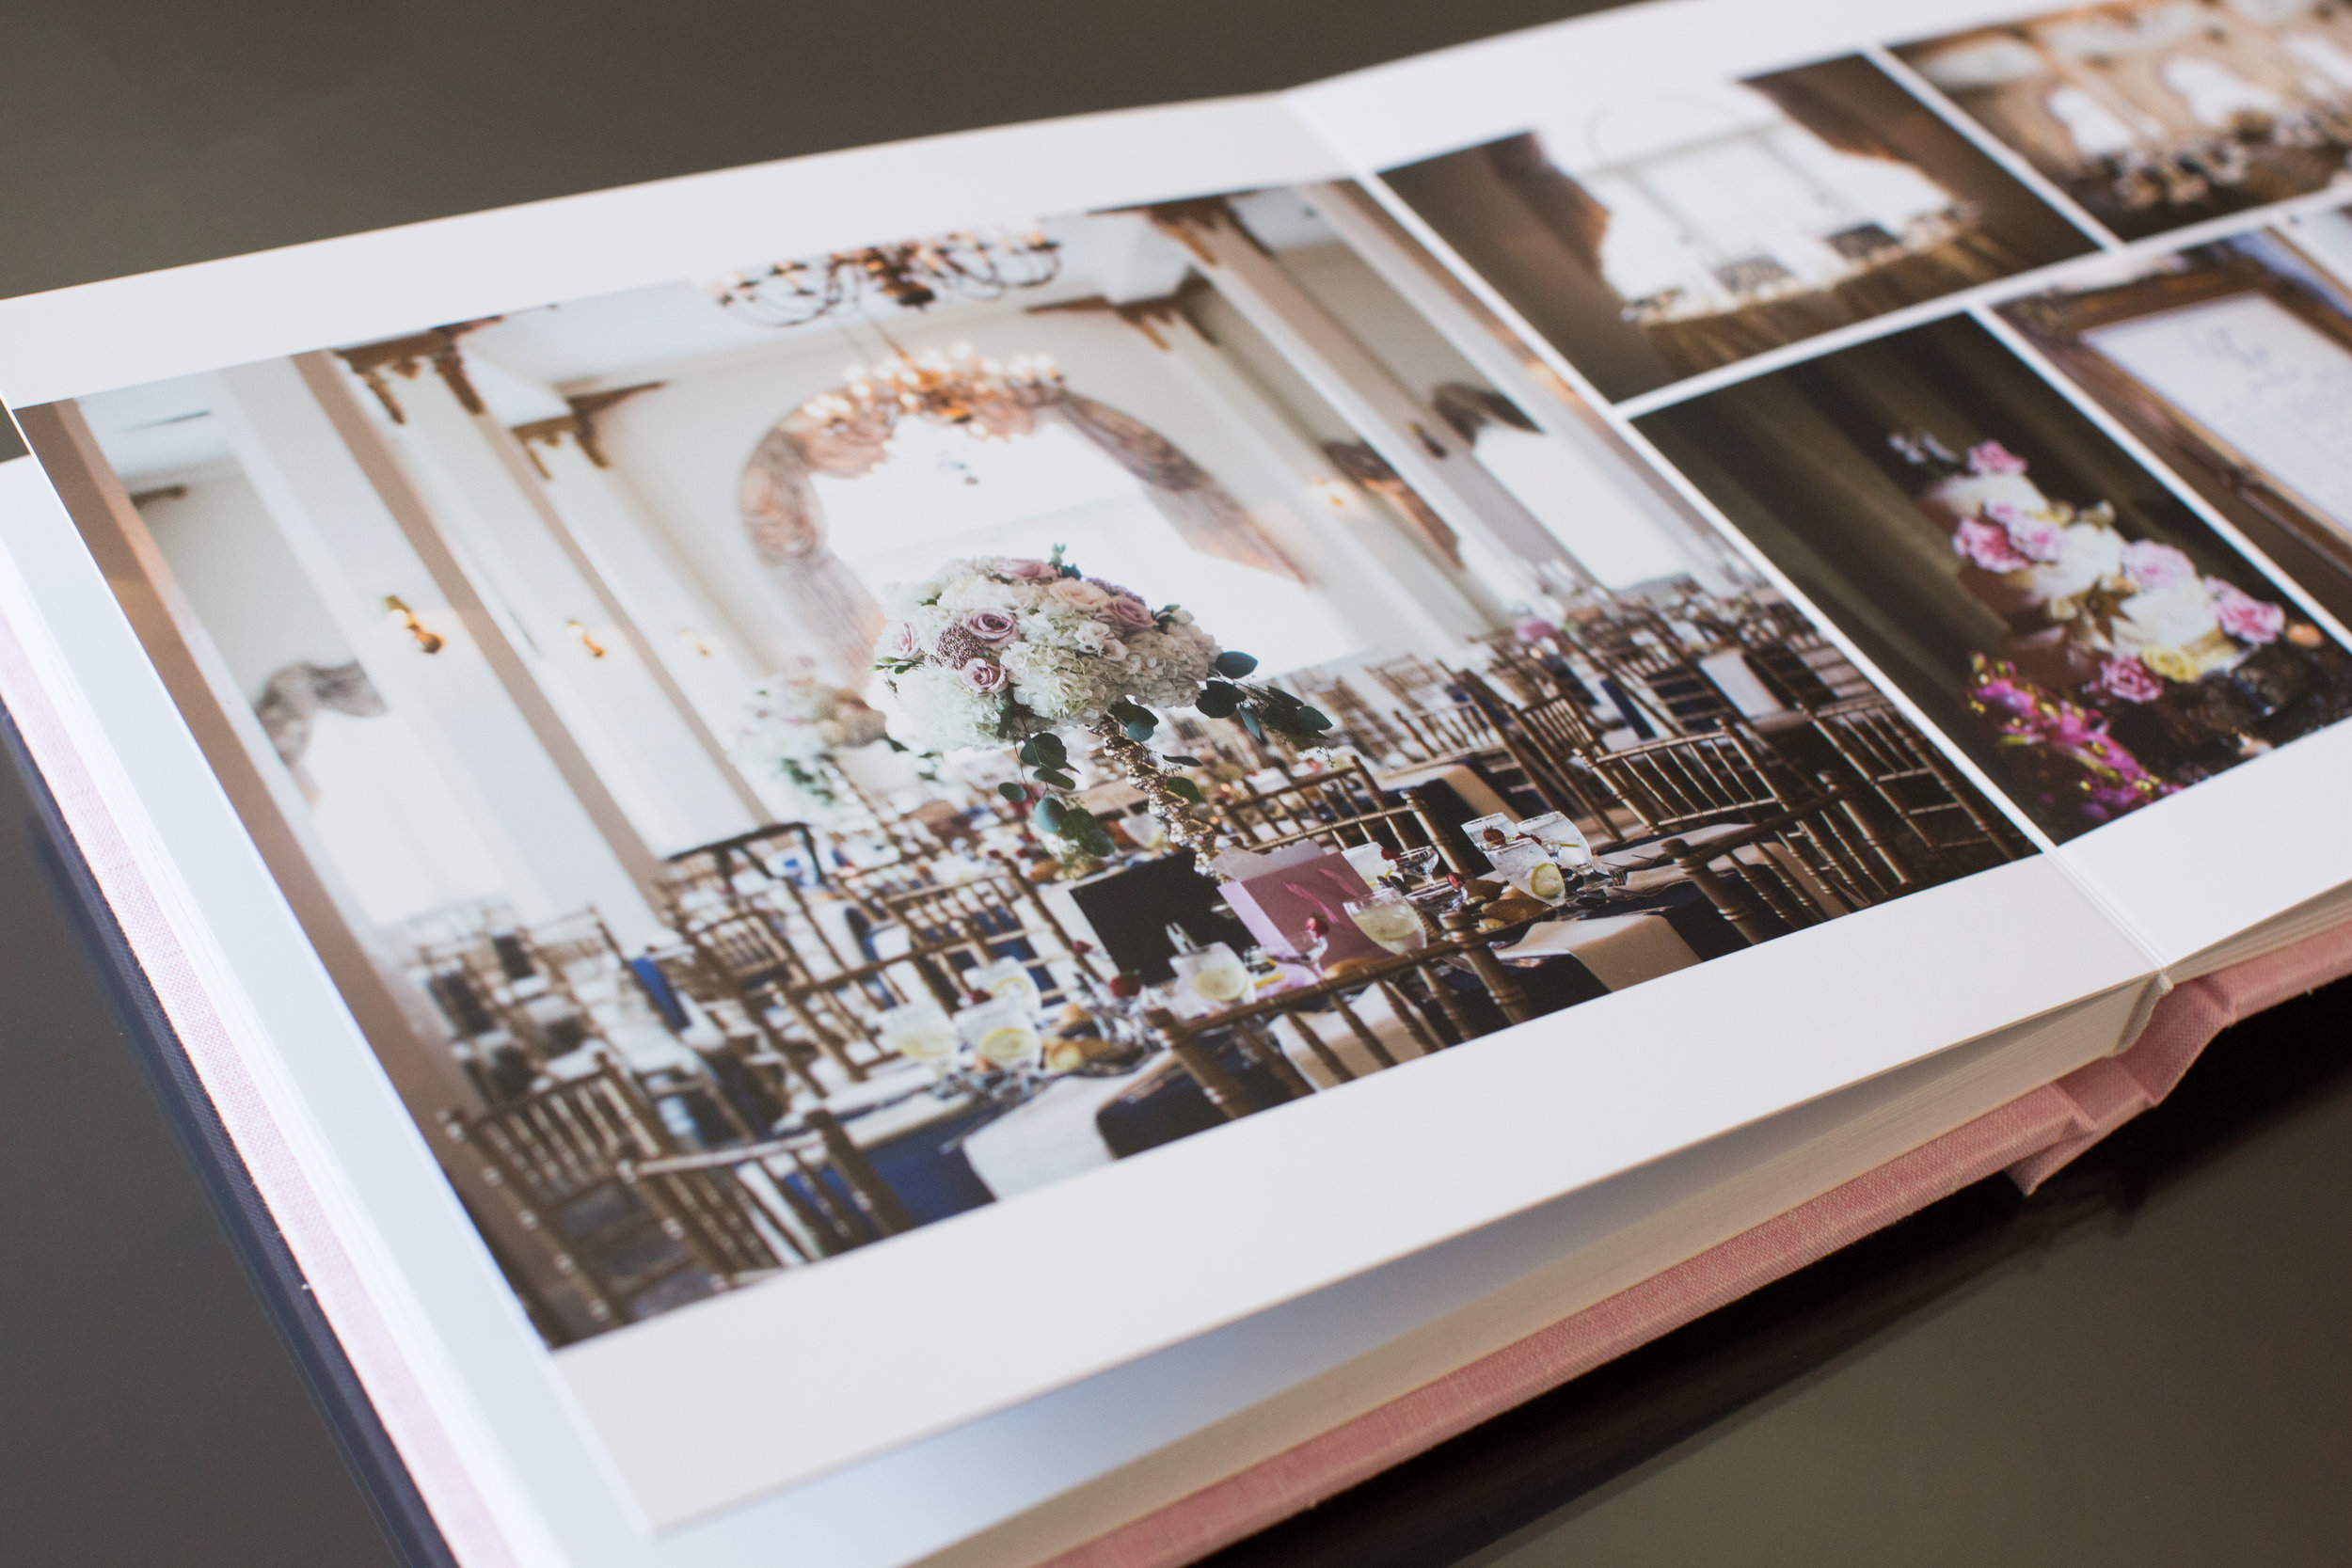 I made this wedding album for The Flanders Hotel, so naturally I had to include their gorgeous ballroom.